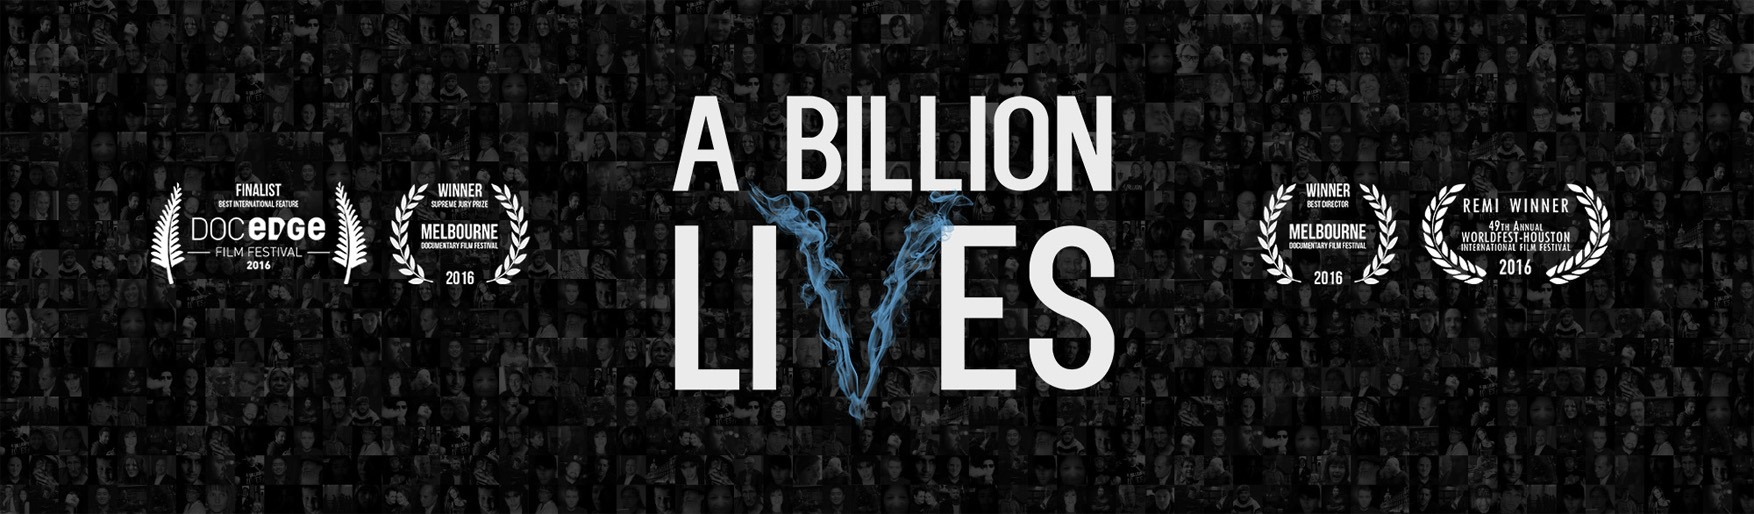 Boj o miliardu životů - A Billion Lives